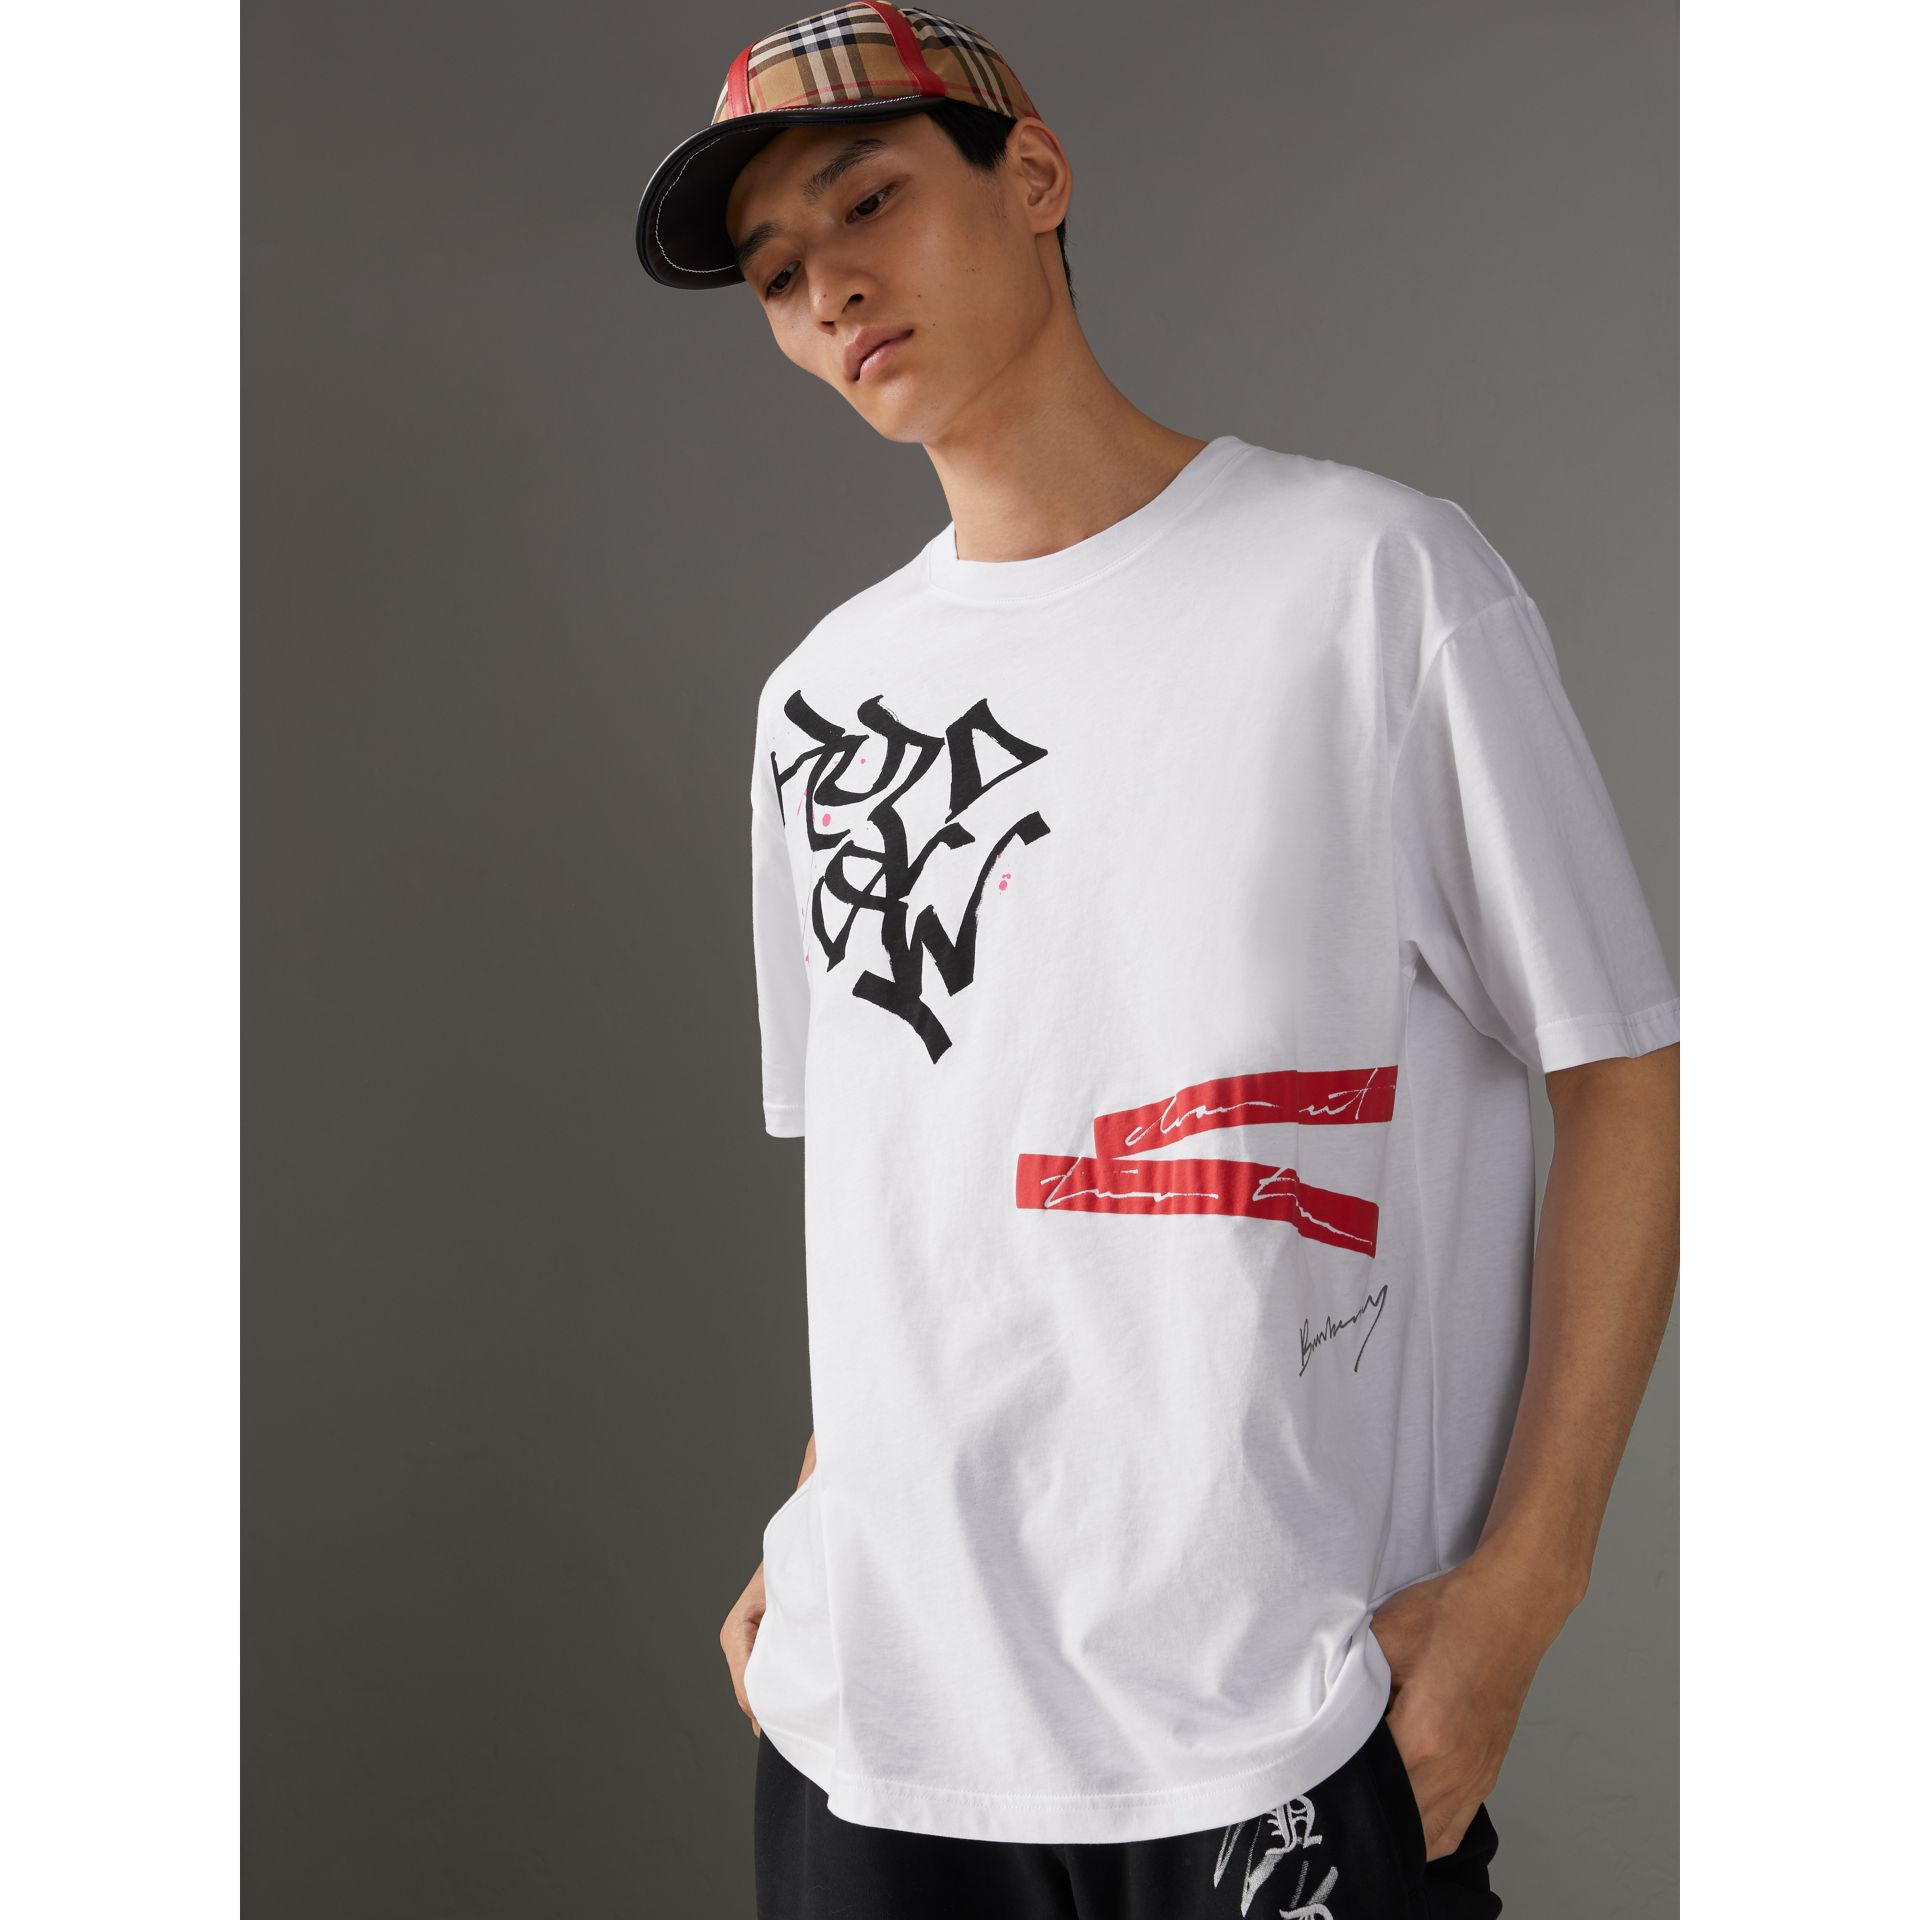 Burberry x Kris Wu Printed Cotton T-shirt in White - Men | Burberry United States - gallery image 4